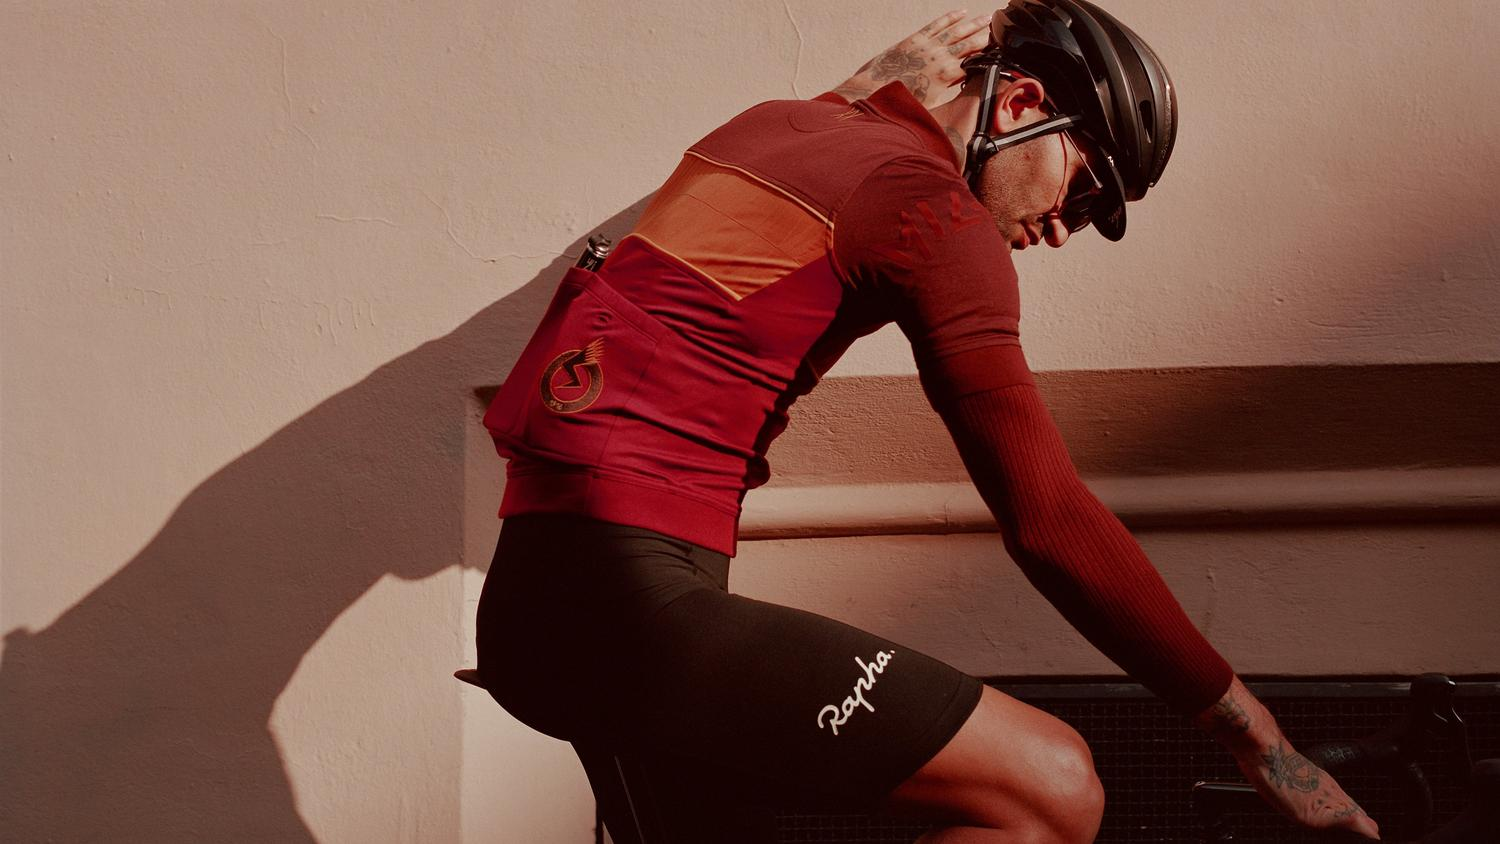 A forgotten race between iconic Italian cities. Two editions, twelve years apart, both won by the same rider: Milano-Roma. Rapha celebrates the best bike race you've never heard of with this luxurious special collection.